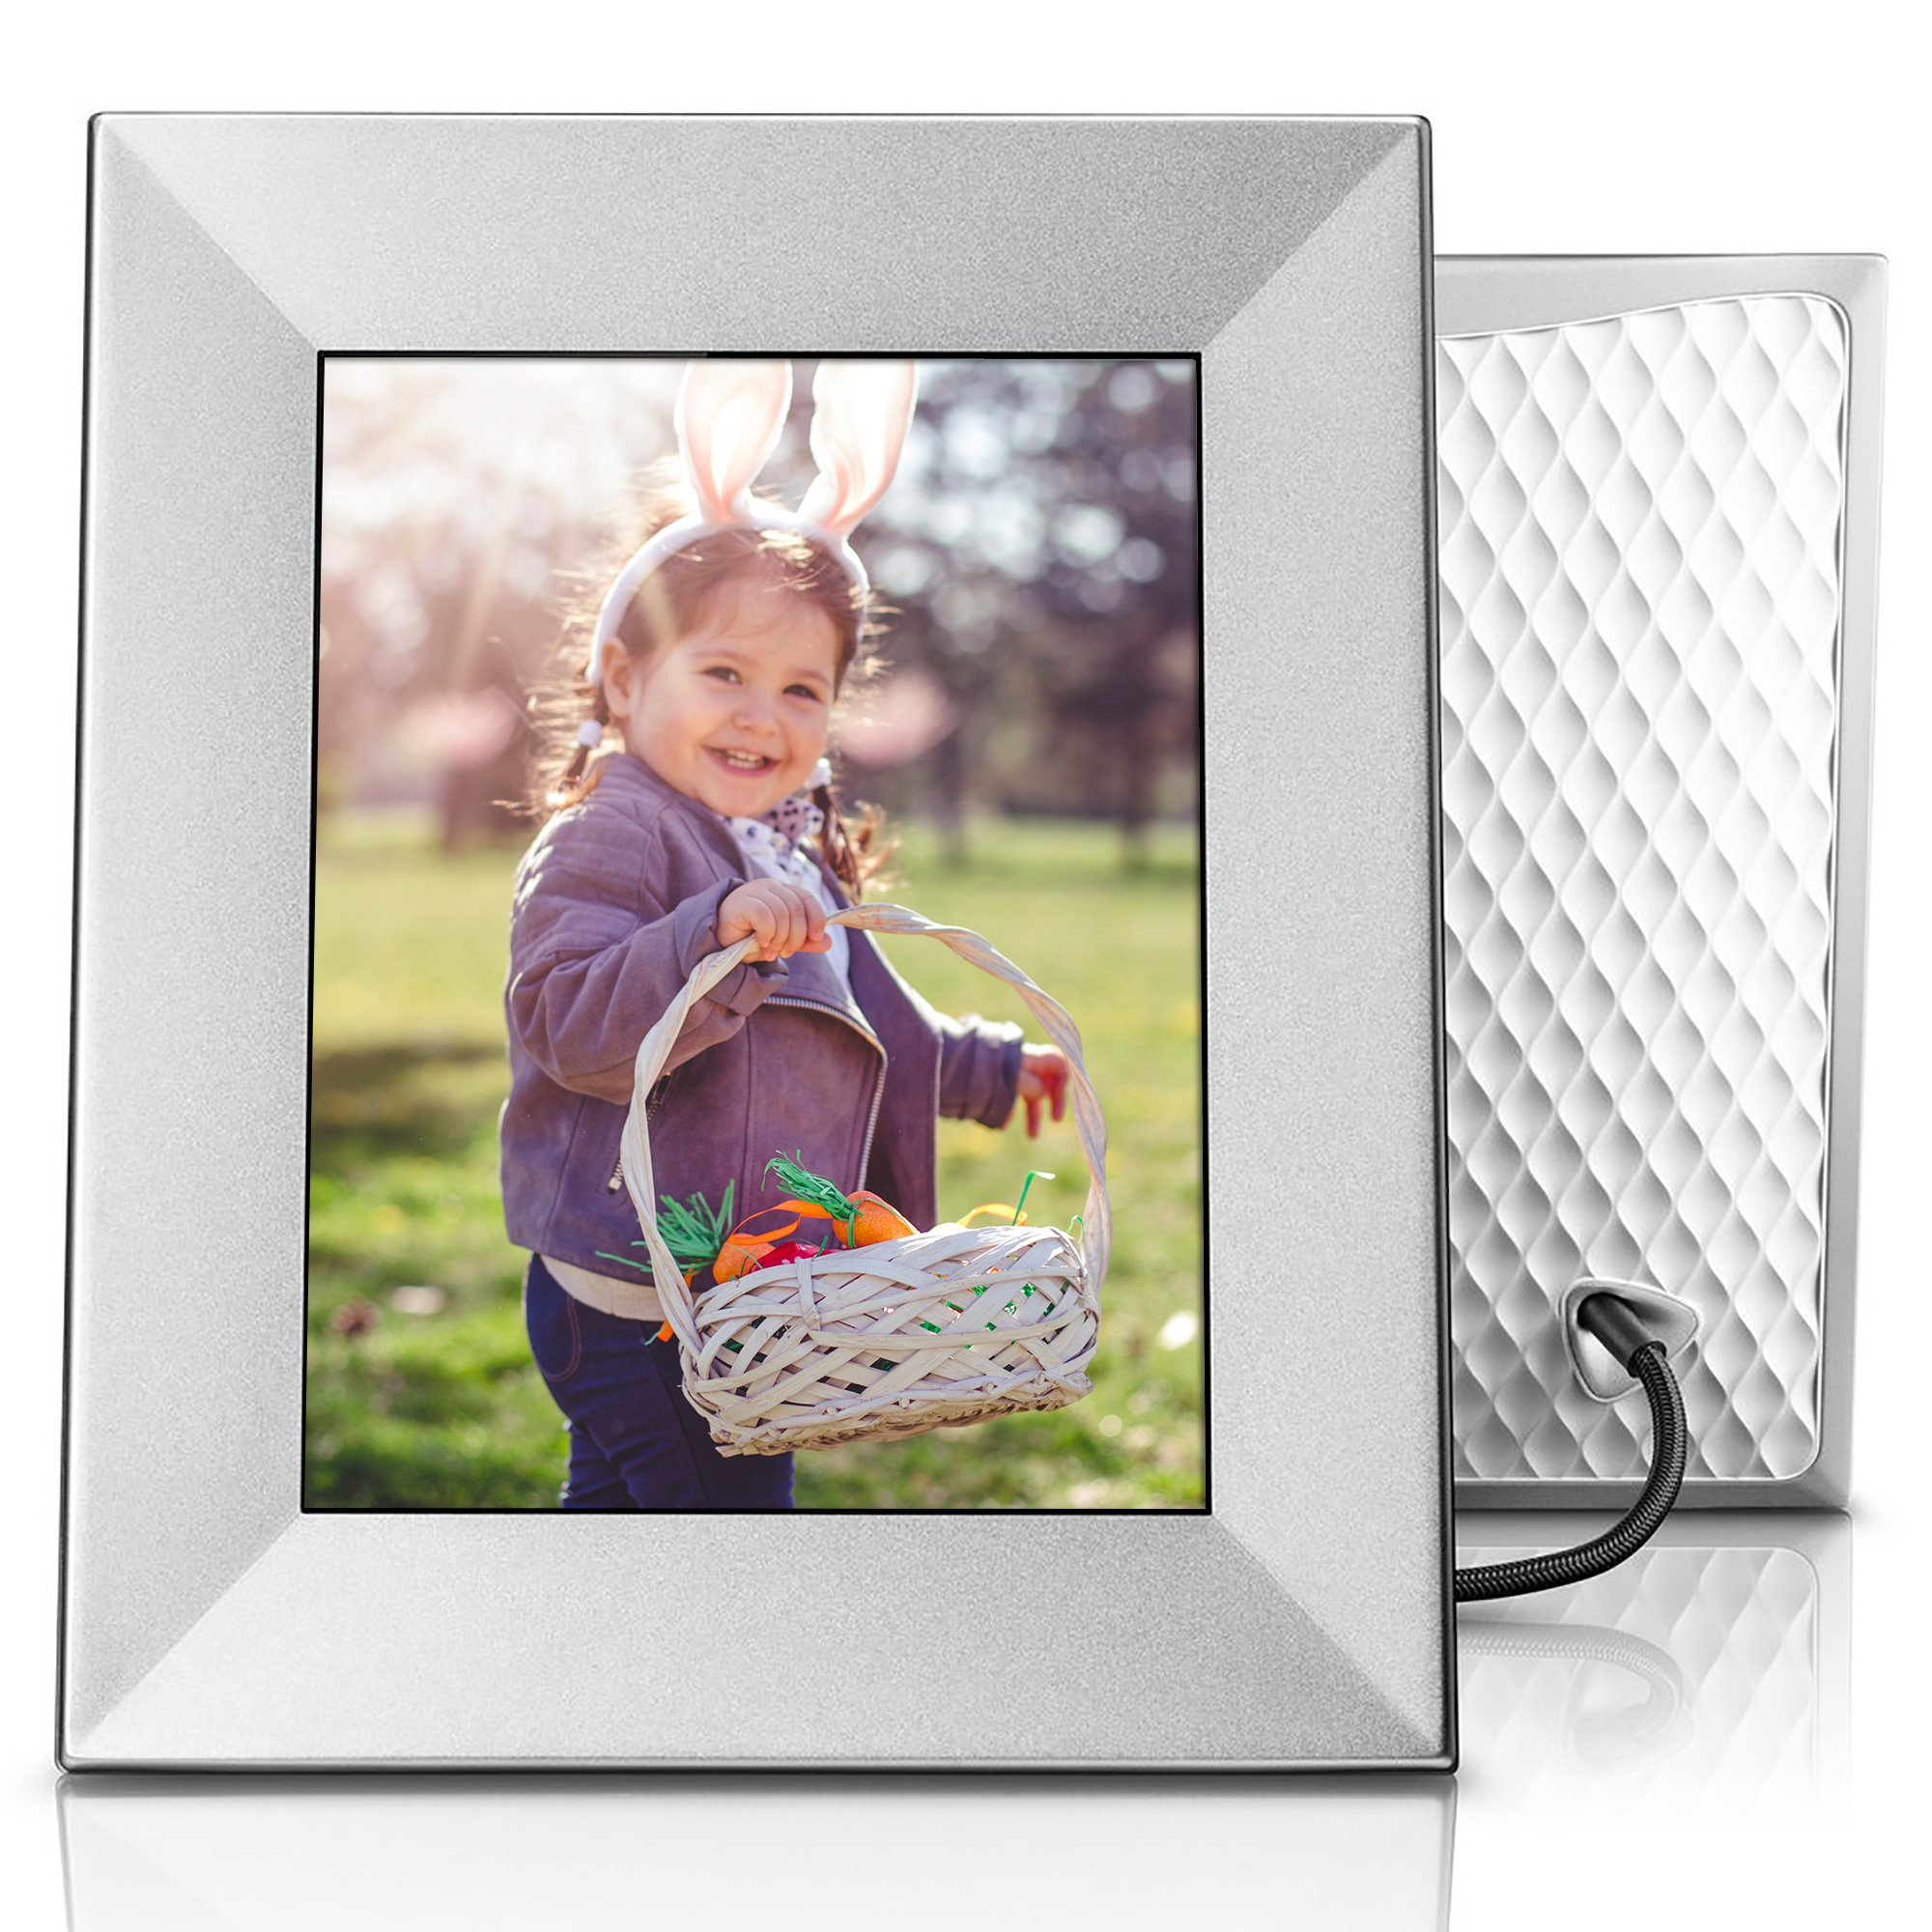 Nixplay Iris 8'' Wi-Fi Cloud Frame (W08E- Silver) by nixplay